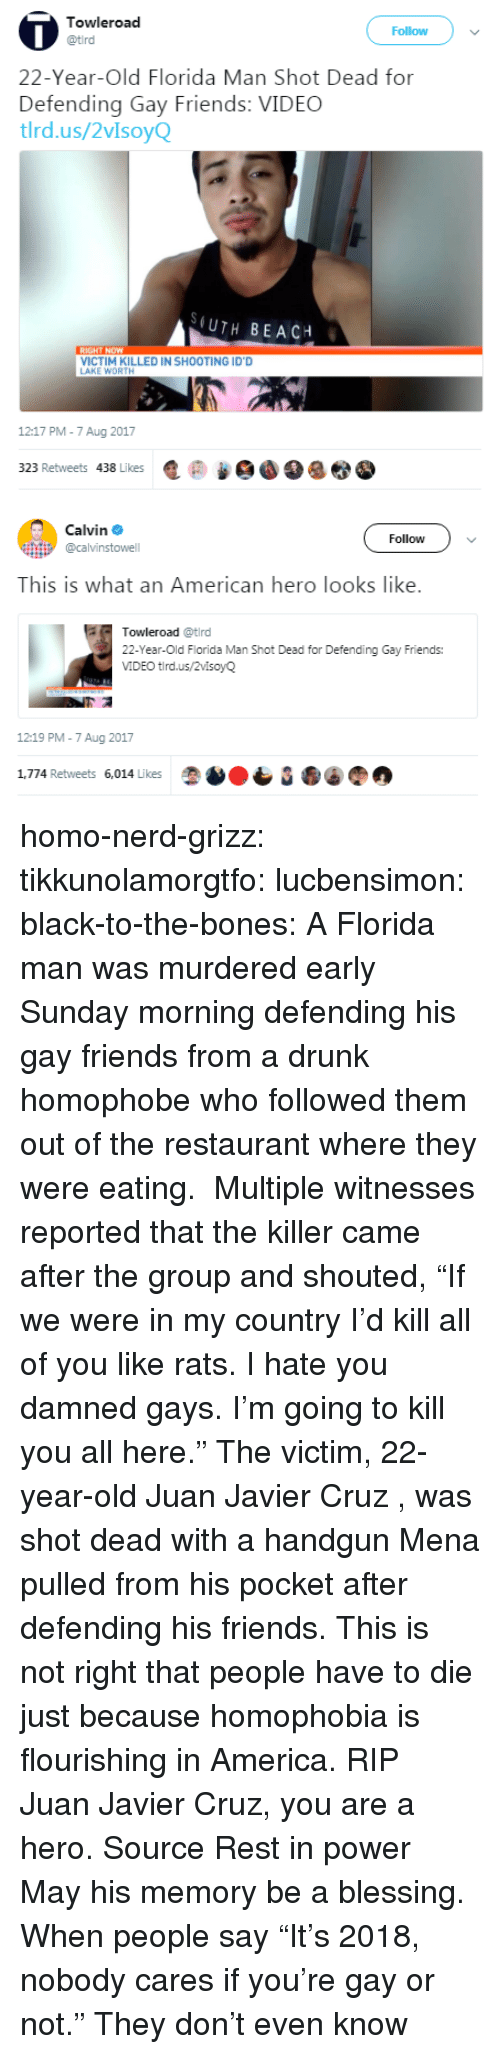 """America, Bones, and Drunk: Towleroad  Follow  22-Year-Old Florida Man Shot Dead for  Defending Gay Friends: VIDEC  tlrd.us/2vIsoyQ  (UTH BEACH  VICTIM KILLED IN SHOOTING ID'D  AKE WORTH  1217 PM-7 Aug 2017  323 Retweets 438 Likes匿@   Calvin Φ  @calvinstowell  Follow  This is what an American hero looks like.  Towleroad @tird  22-Year-Old Florida Man Shot Dead for Defending Gay Friends:  VIDEO tird.us/2vlsoyQ  12:19 PM-7 Aug 2017  1,774 Retweets 6,014 Likes homo-nerd-grizz: tikkunolamorgtfo:  lucbensimon:  black-to-the-bones:     A Florida man was murdered early Sunday morning defending his gay friends from a drunk homophobe who followed them out of the restaurant where they were eating. Multiple witnesses reported that the killer came after the group and shouted, """"If we were in my country I'd kill all of you like rats. I hate you damned gays. I'm going to kill you all here.""""   The victim, 22-year-old Juan Javier Cruz , was shot dead with a handgun Mena pulled from his pocket after defending his friends.   This is not right that people have to die just because homophobia is flourishing in America. RIP  Juan Javier Cruz, you are a hero. Source   Rest in power  May his memory be a blessing.   When people say """"It's 2018, nobody cares if you're gay or not."""" They don't even know"""